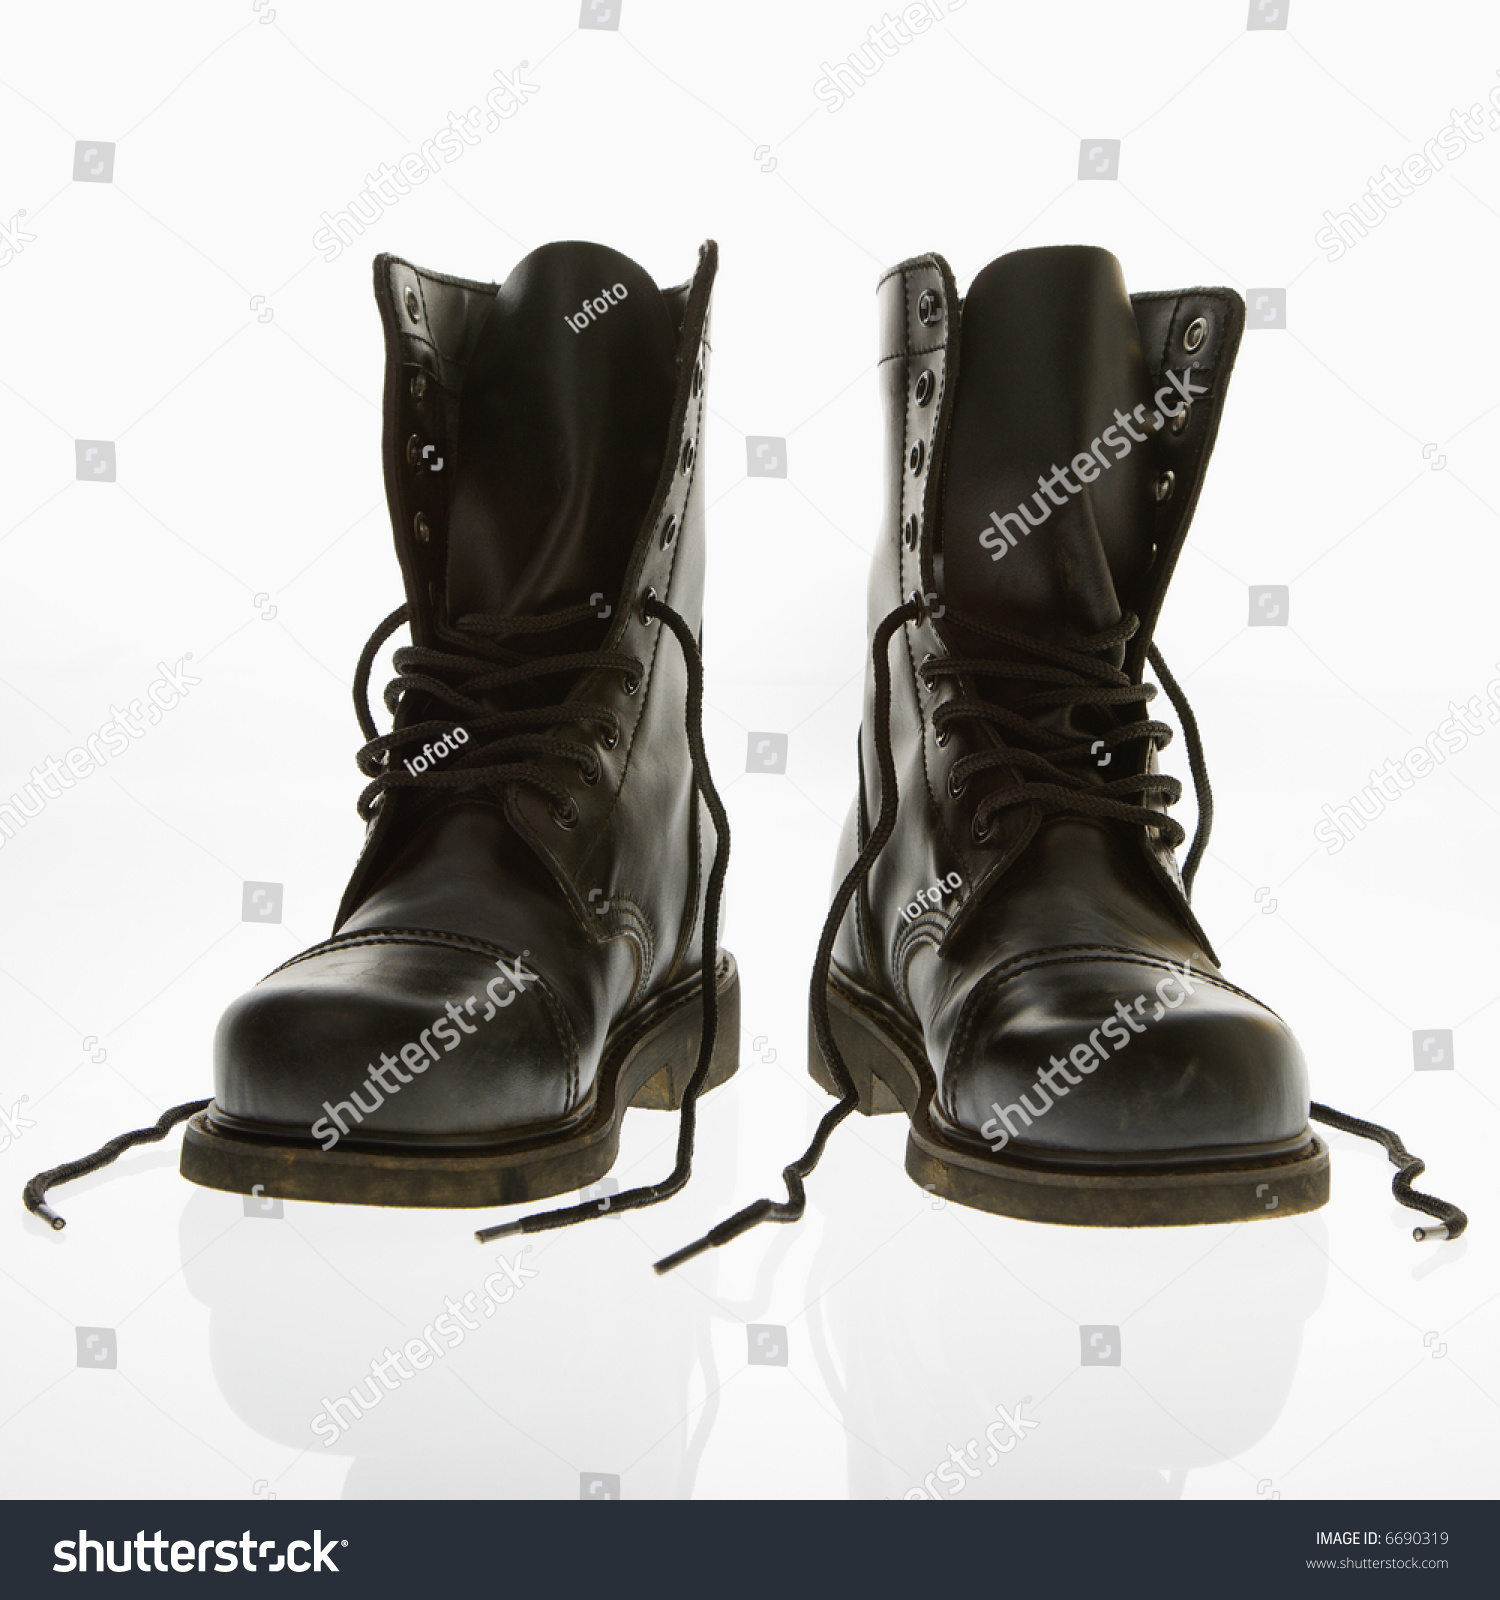 Black Leather High Top Boots Untied Stock Photo 6690319 - Shutterstock